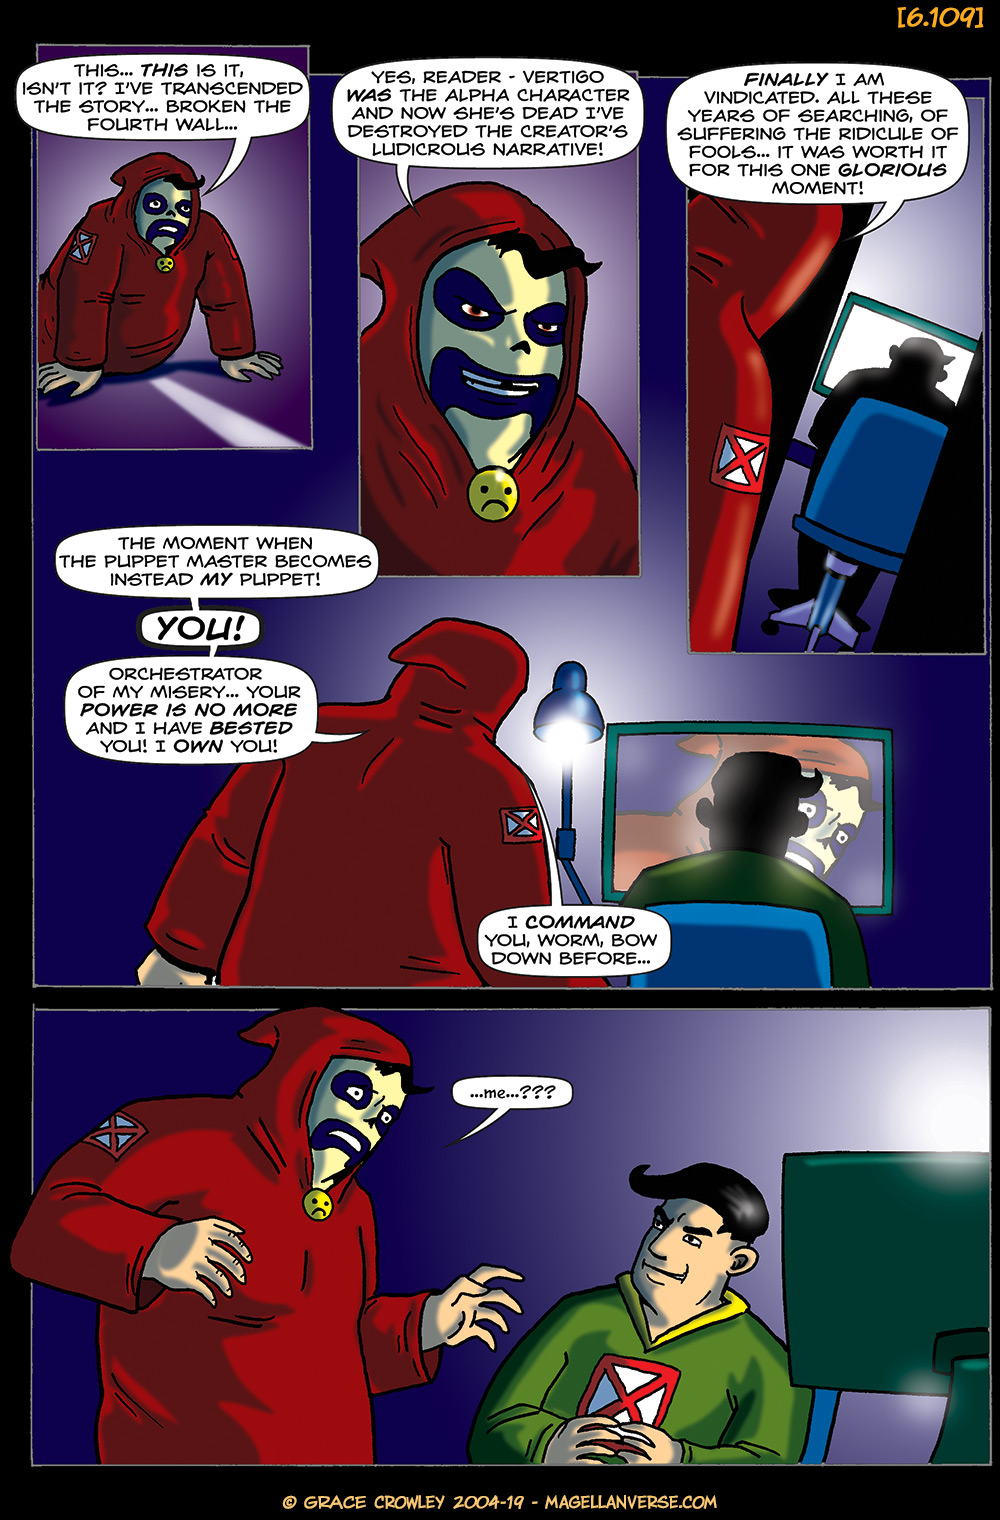 Page 6.109